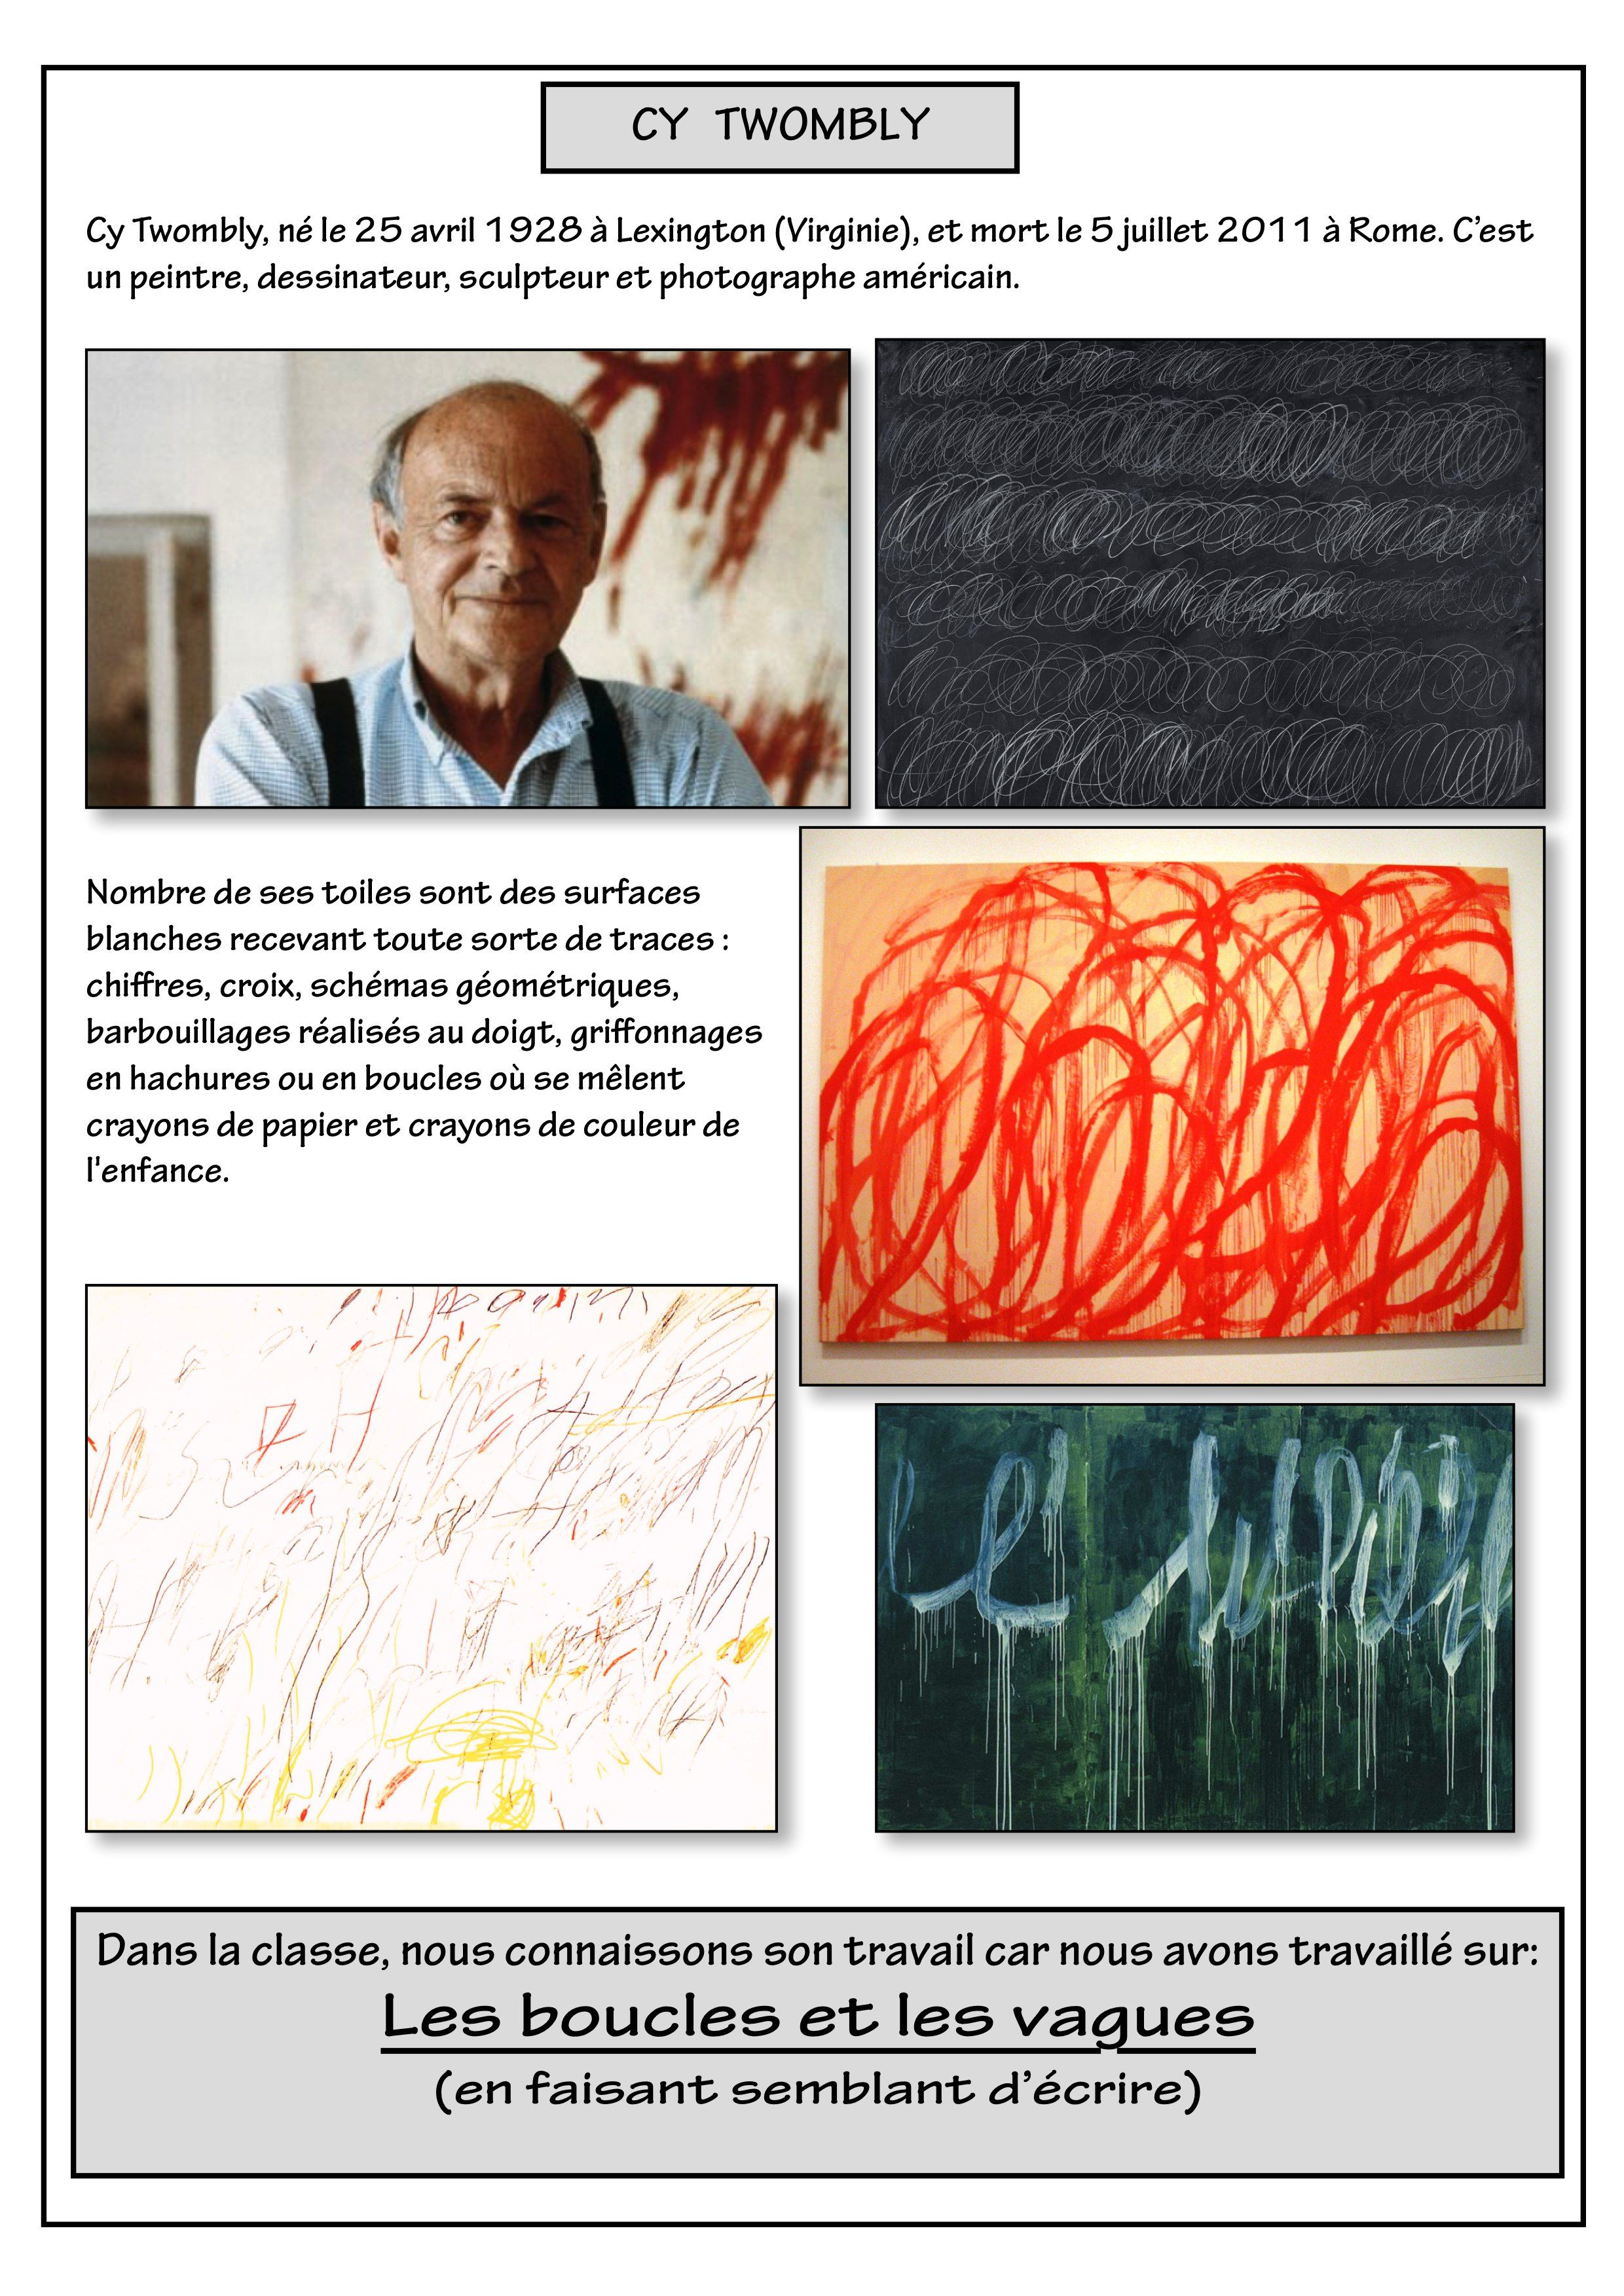 Fiche Cy Twombly